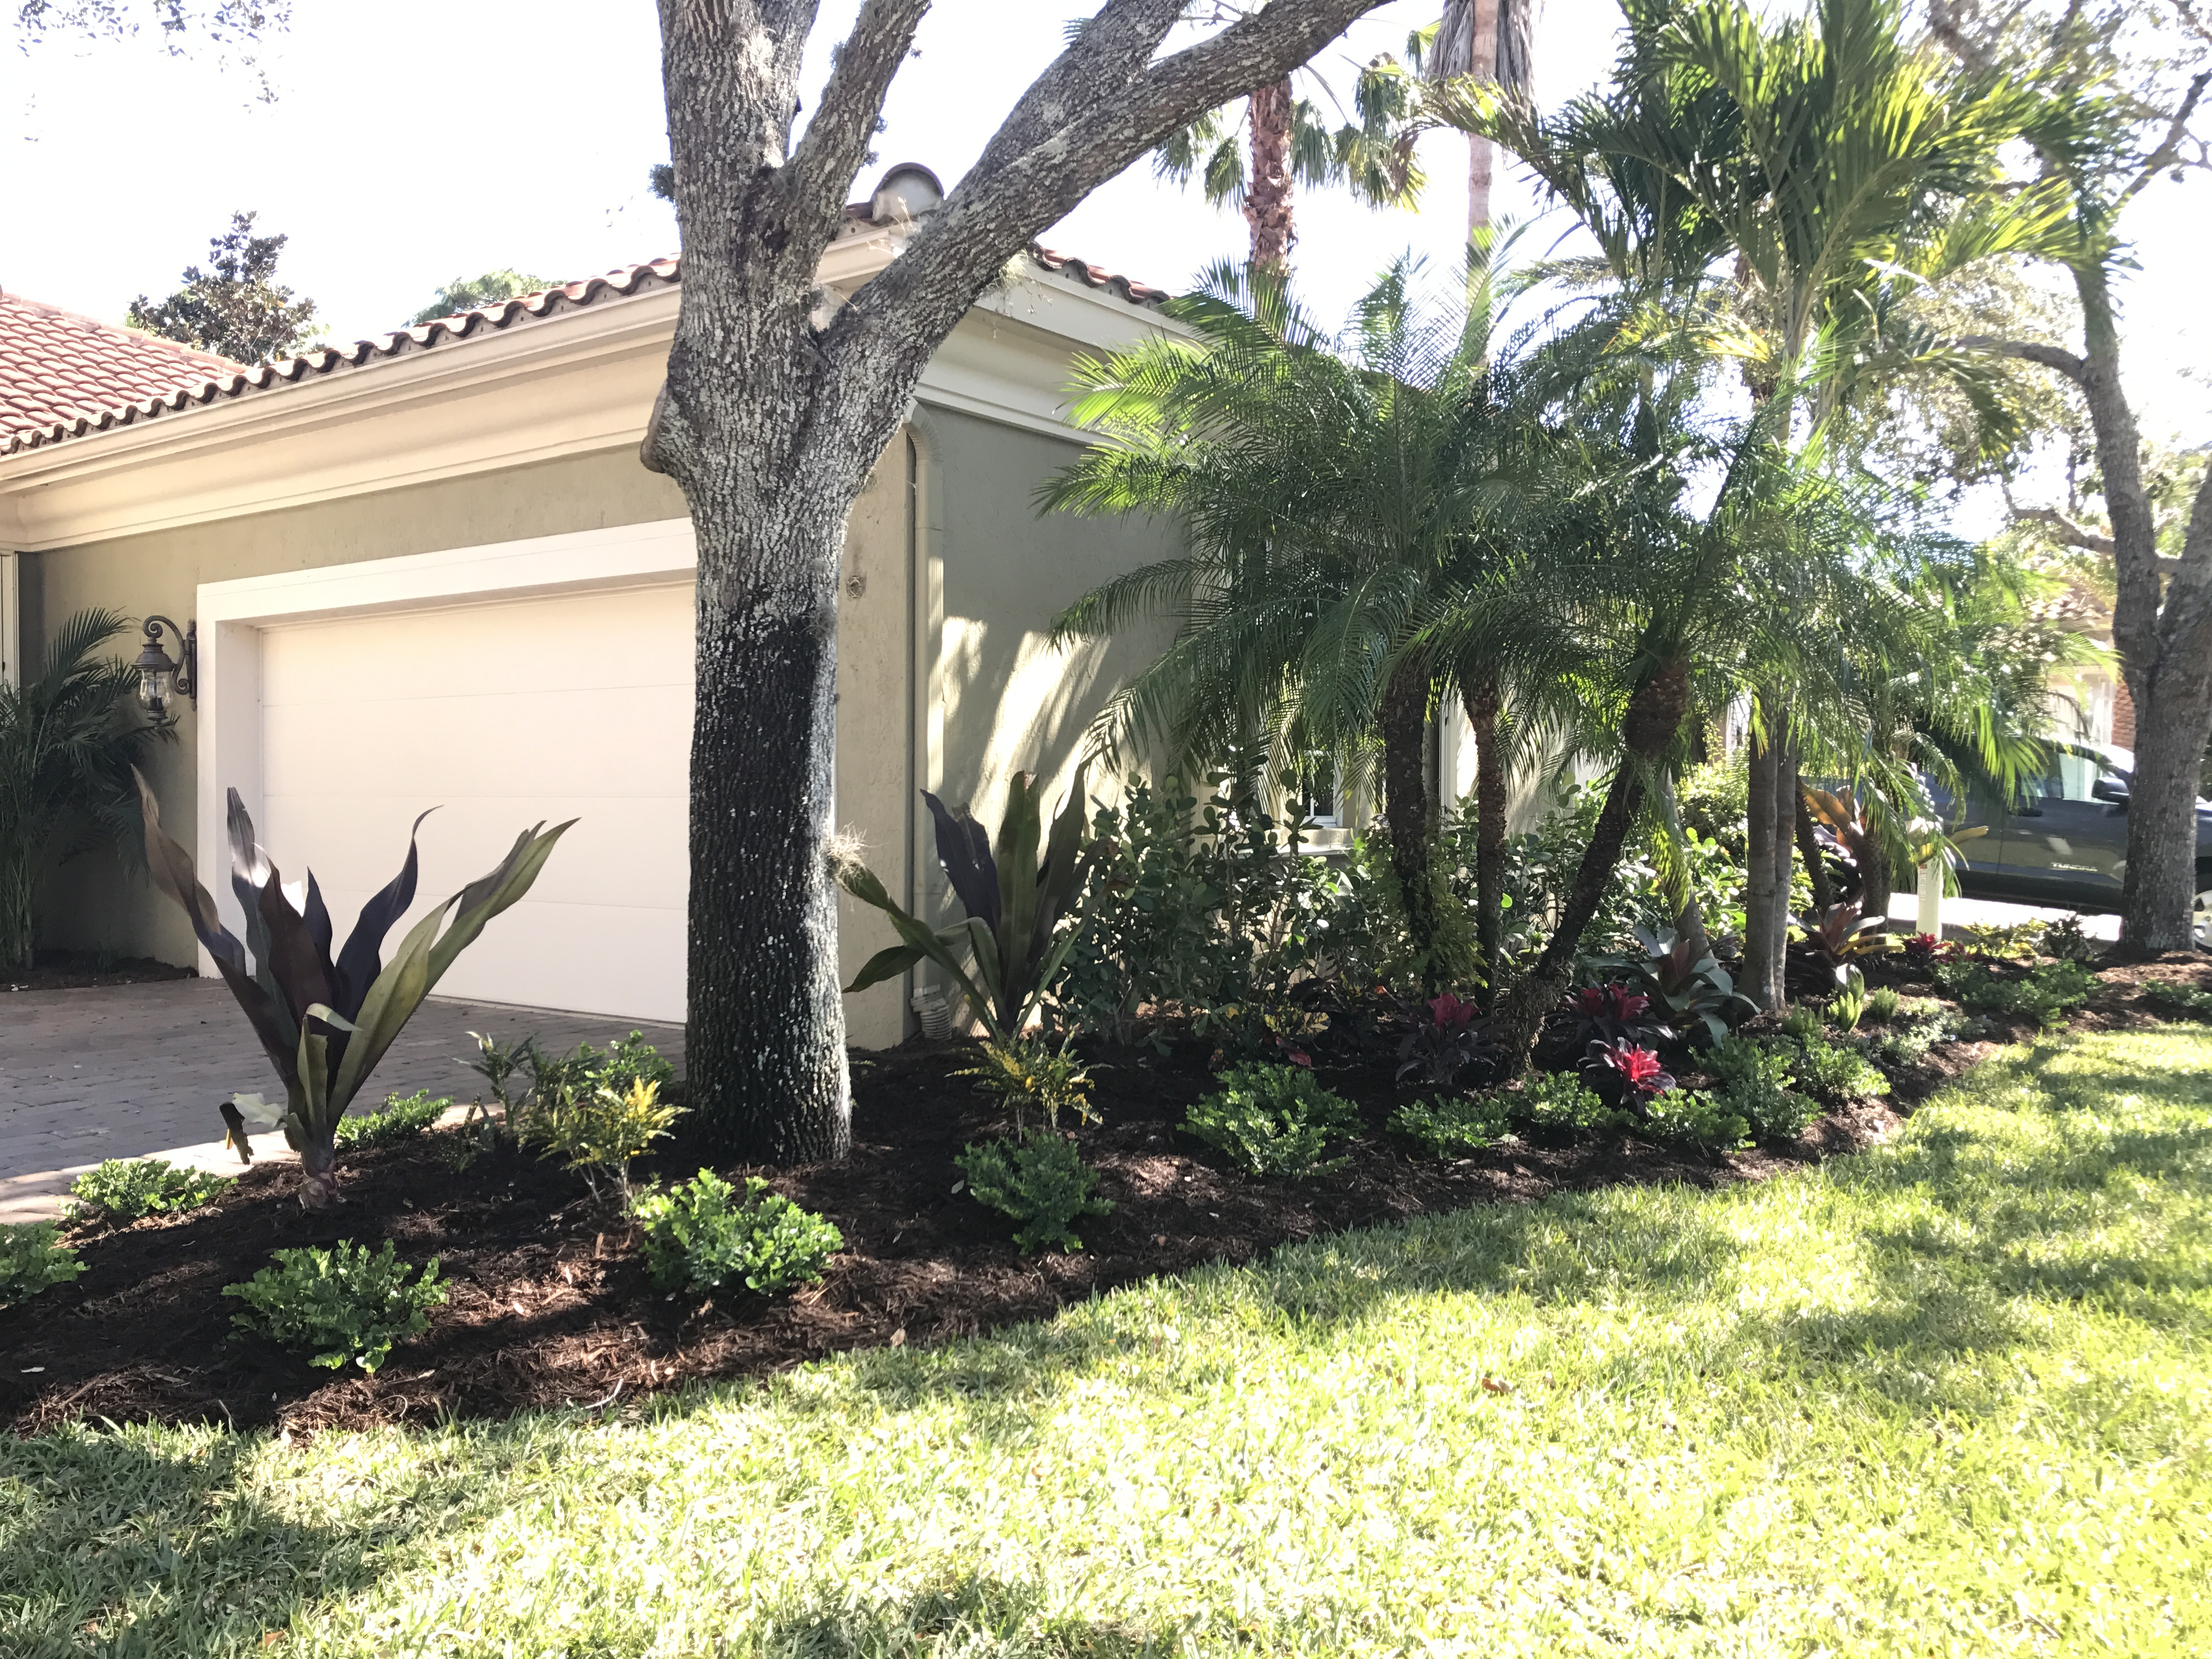 u00bb Tropical Landscaping for Golf Course Home